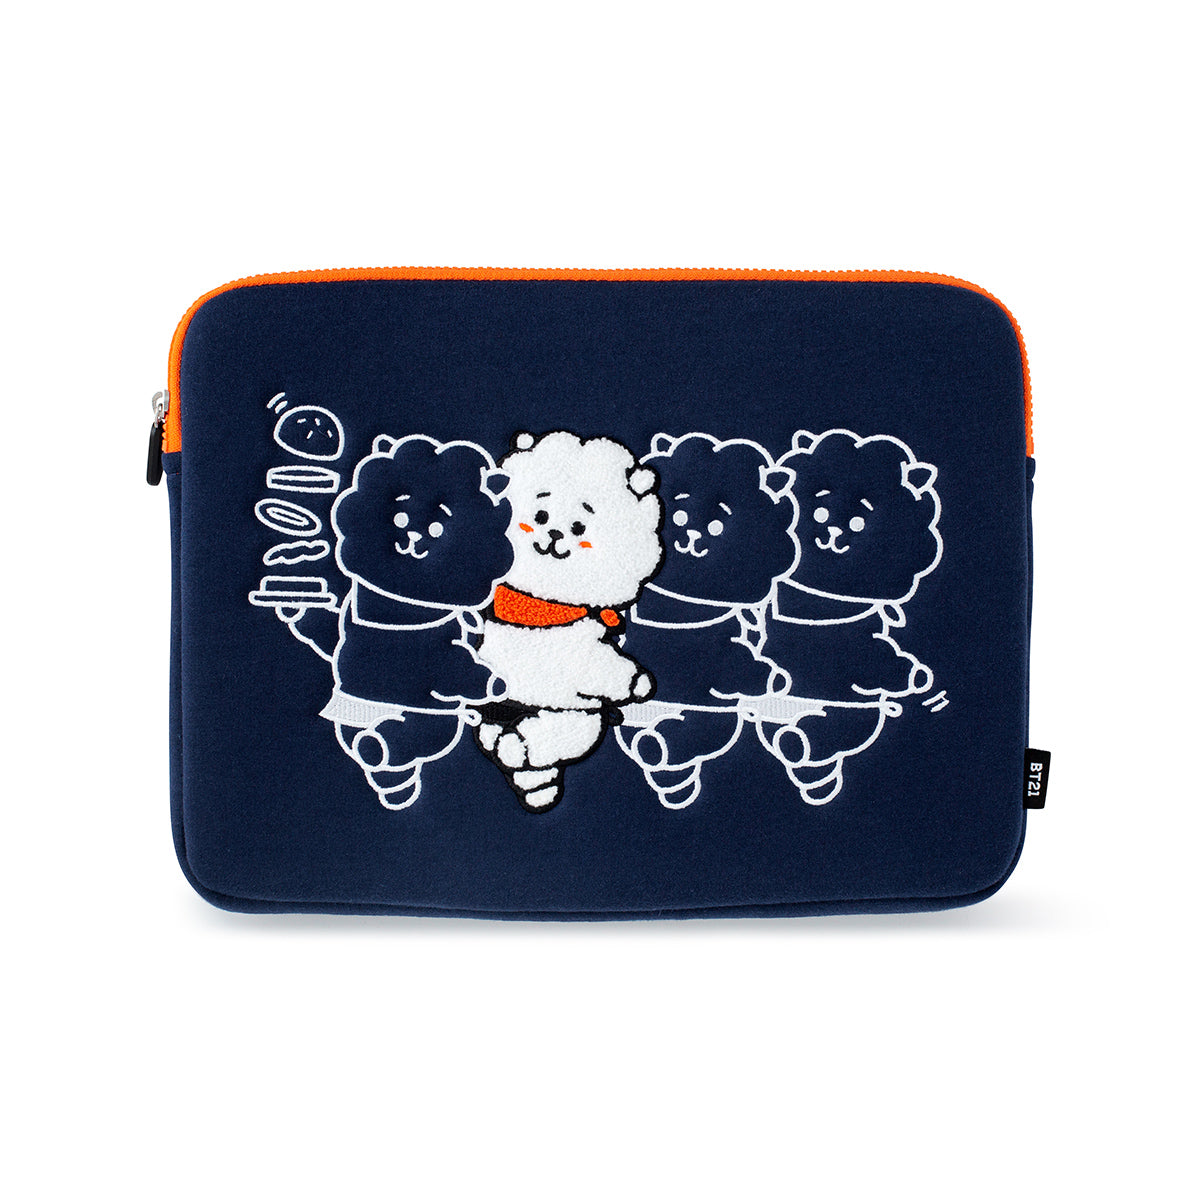 BT21 RJ Bite Ppogeul Laptop Sleeve 13""